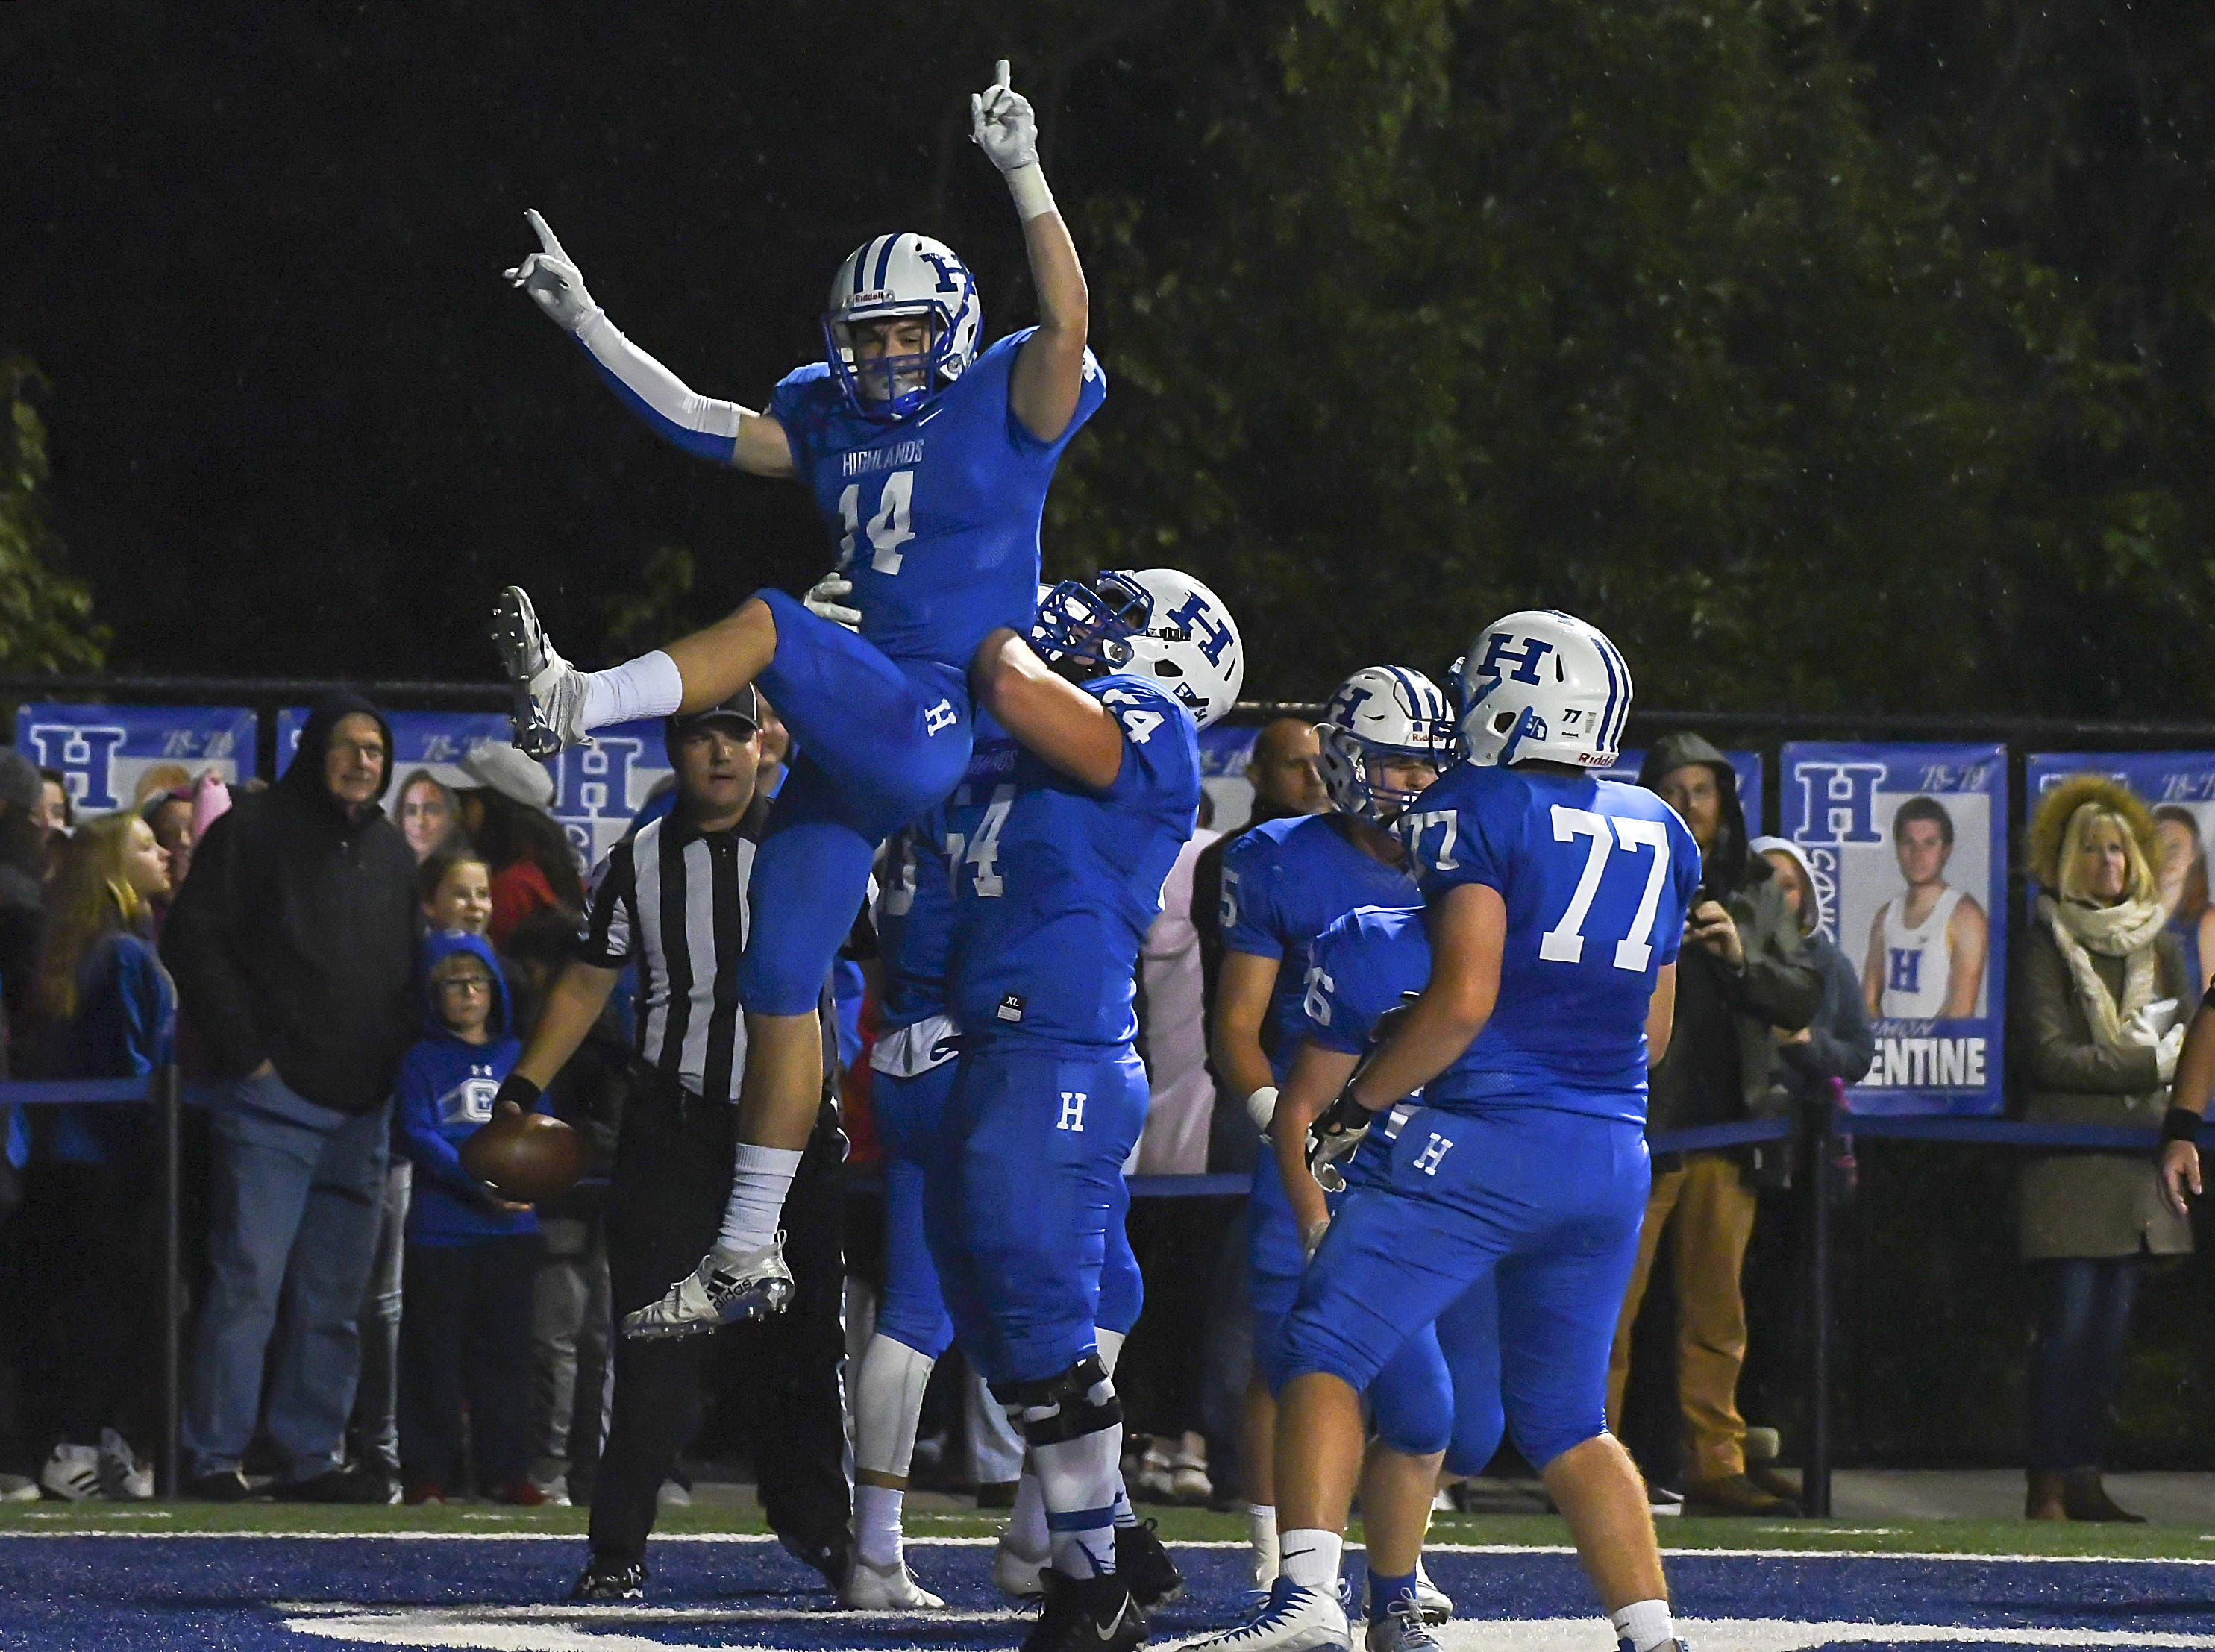 Hunter Ahlfield (14) is lifted by his team after a Bluebird touchdown against Covington Catholic, Highlands High School, Ft. Thomas, KY, Friday, October 12, 2018